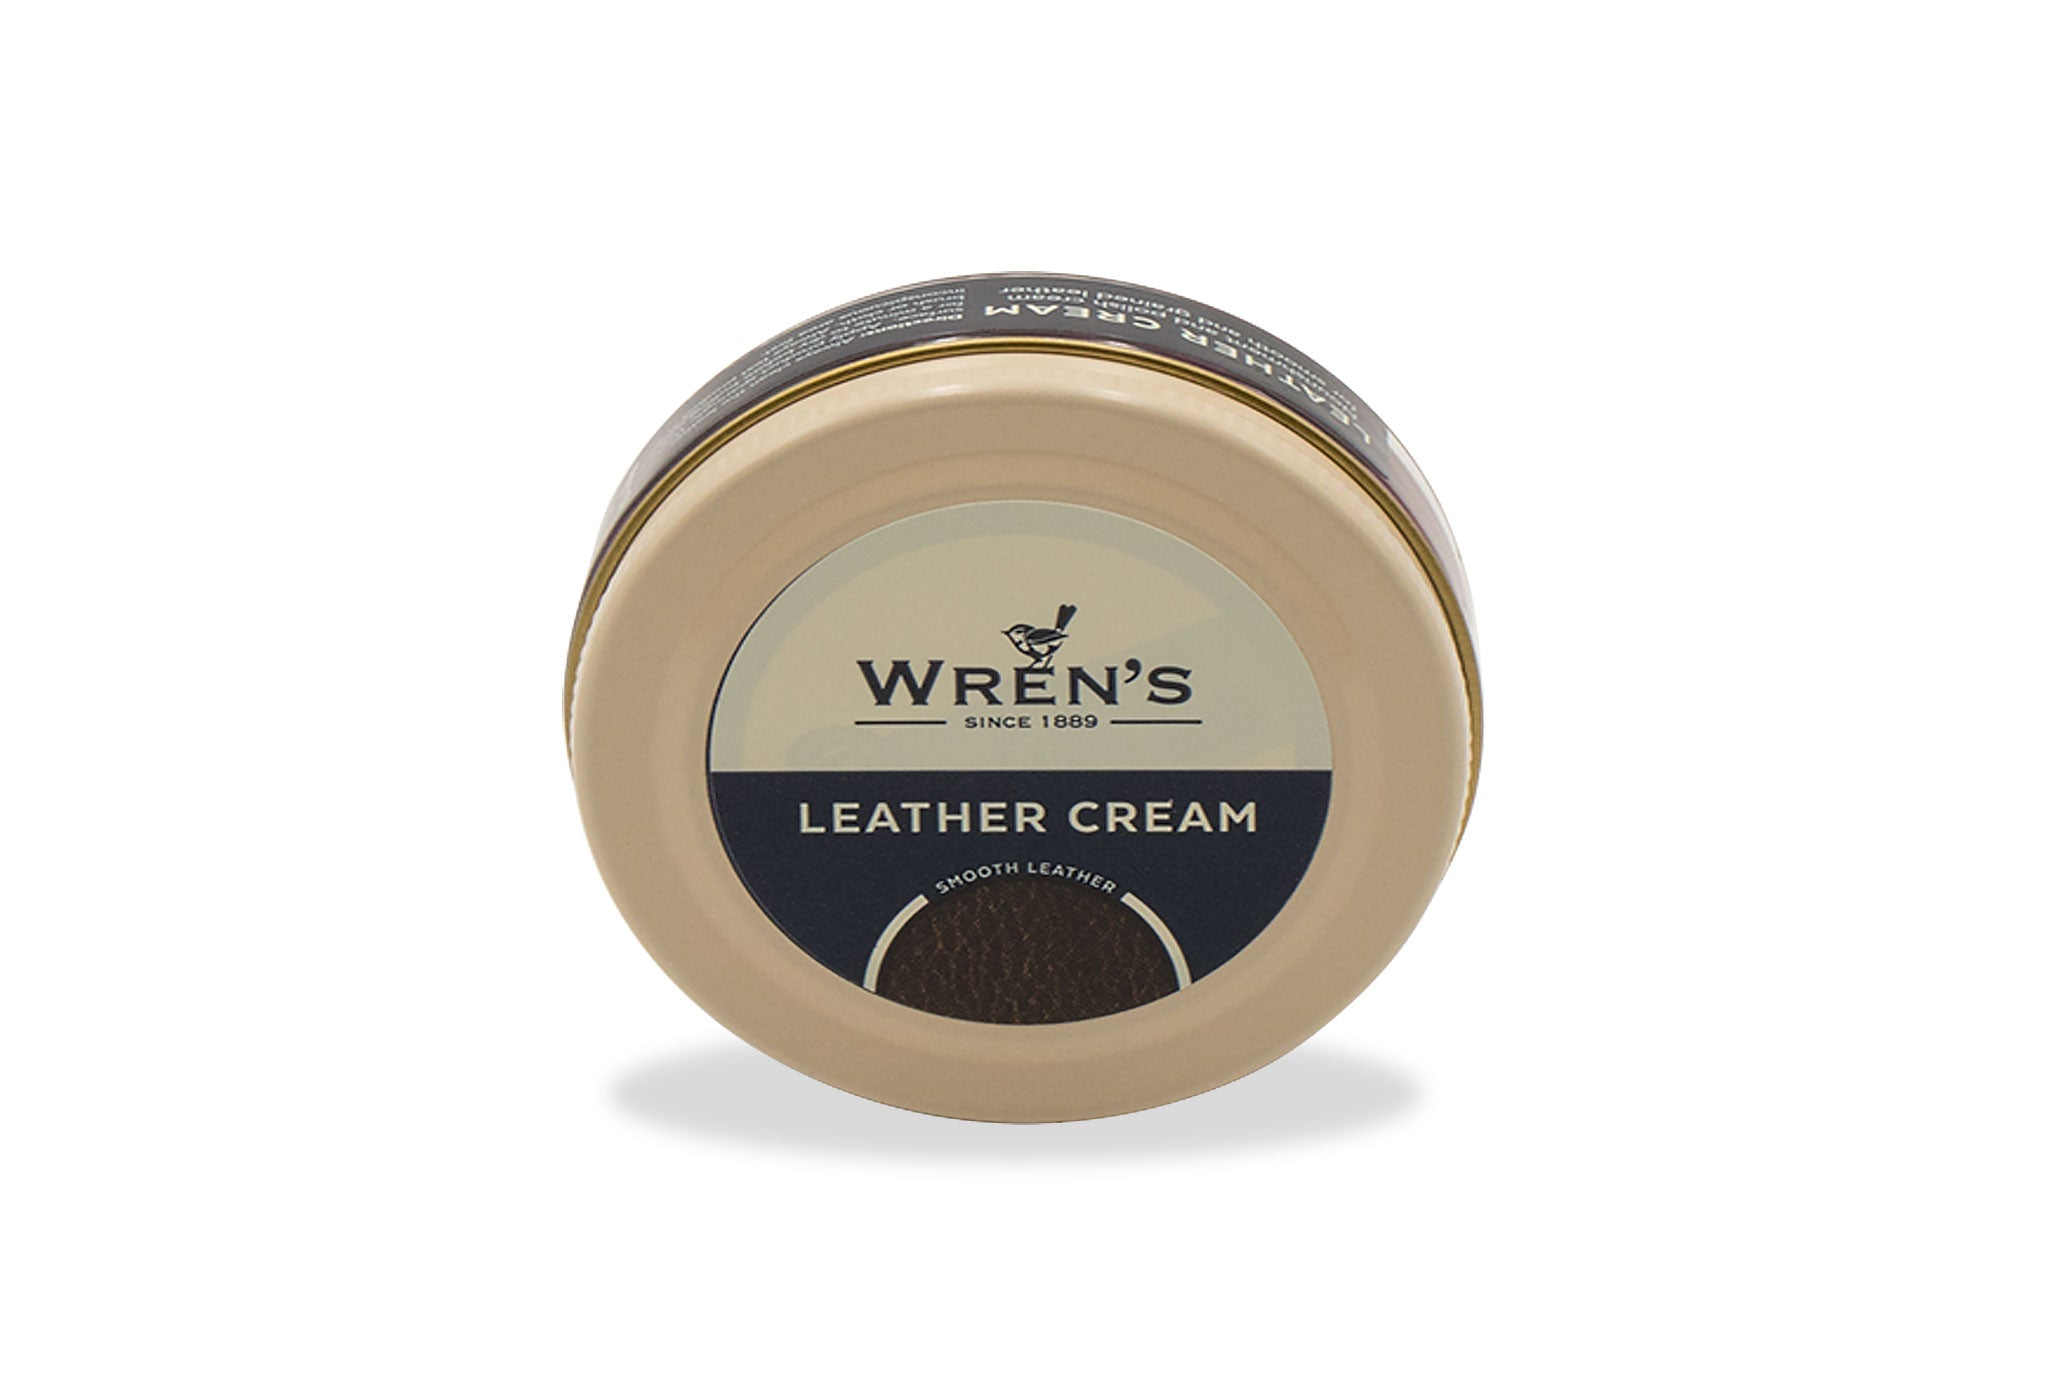 Wren's Leather Cream